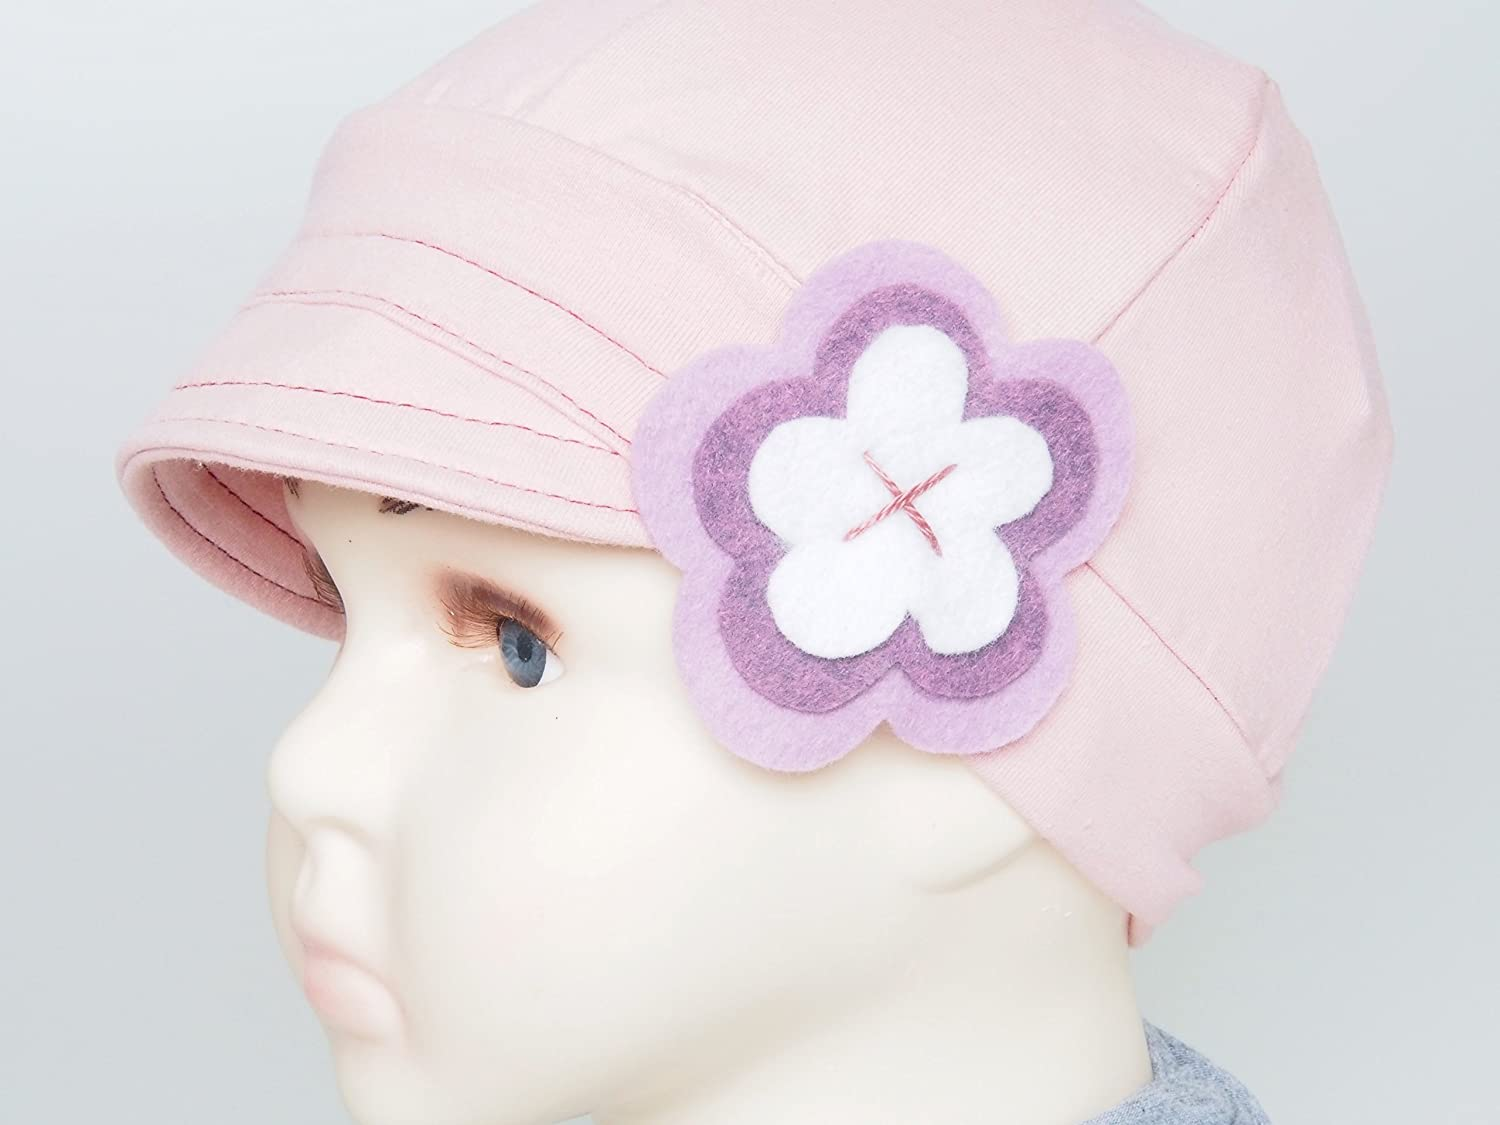 Kids Chemo hat, Alopecia Cotton Beanies, Chemo headwear, Full cover cap